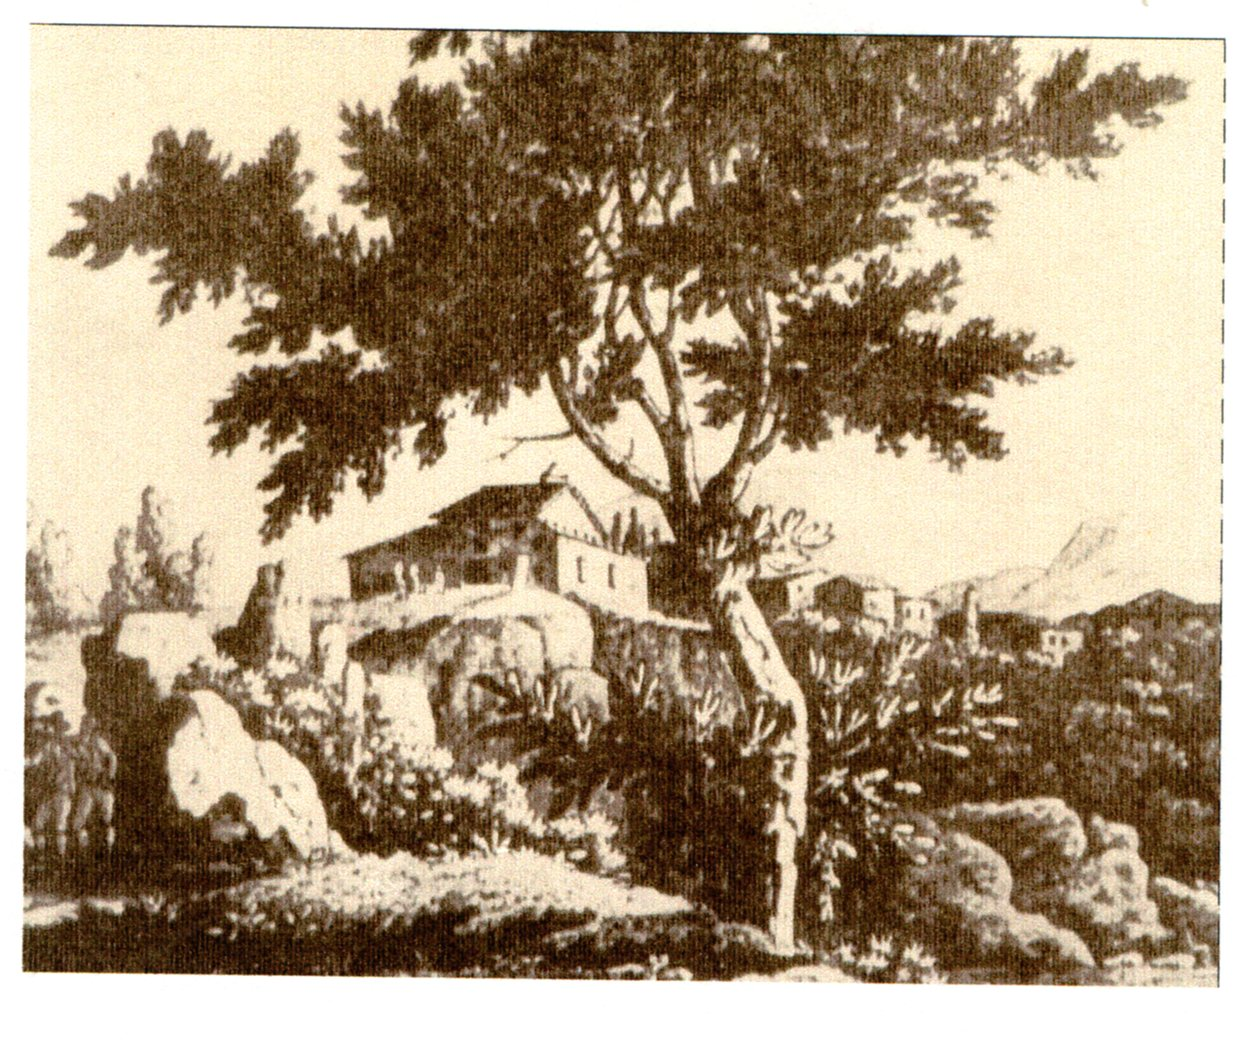 The mystery of the Aquino Tavern and its ancient origins